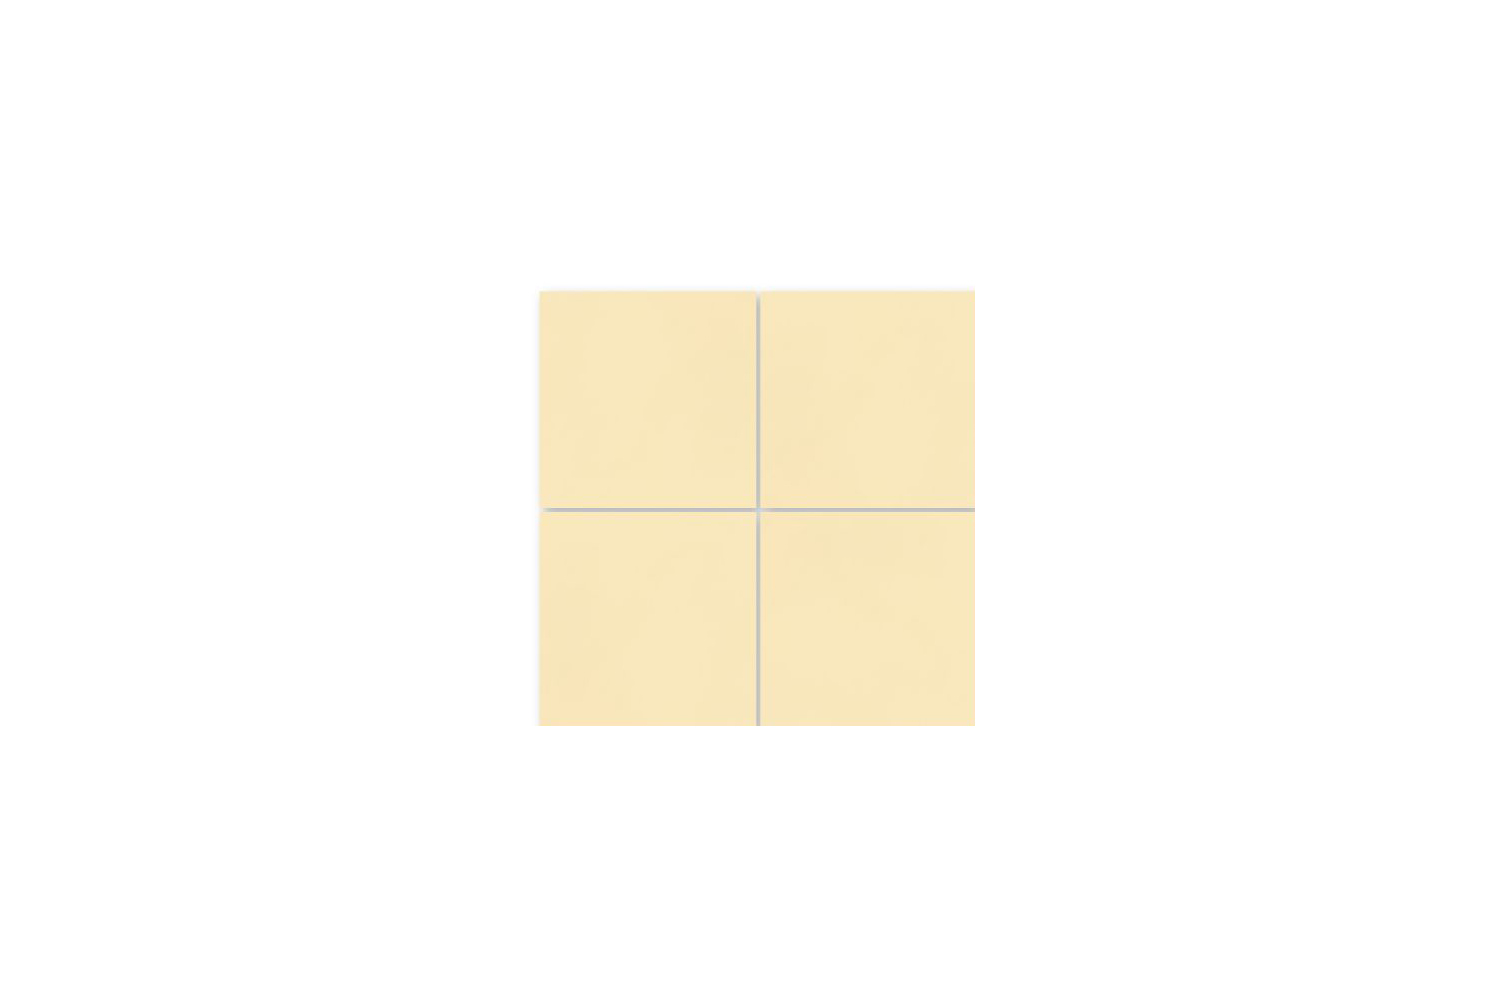 the solid straw tile (sb 7004) is \$4.80 per piece at villa lagoon tile. 12